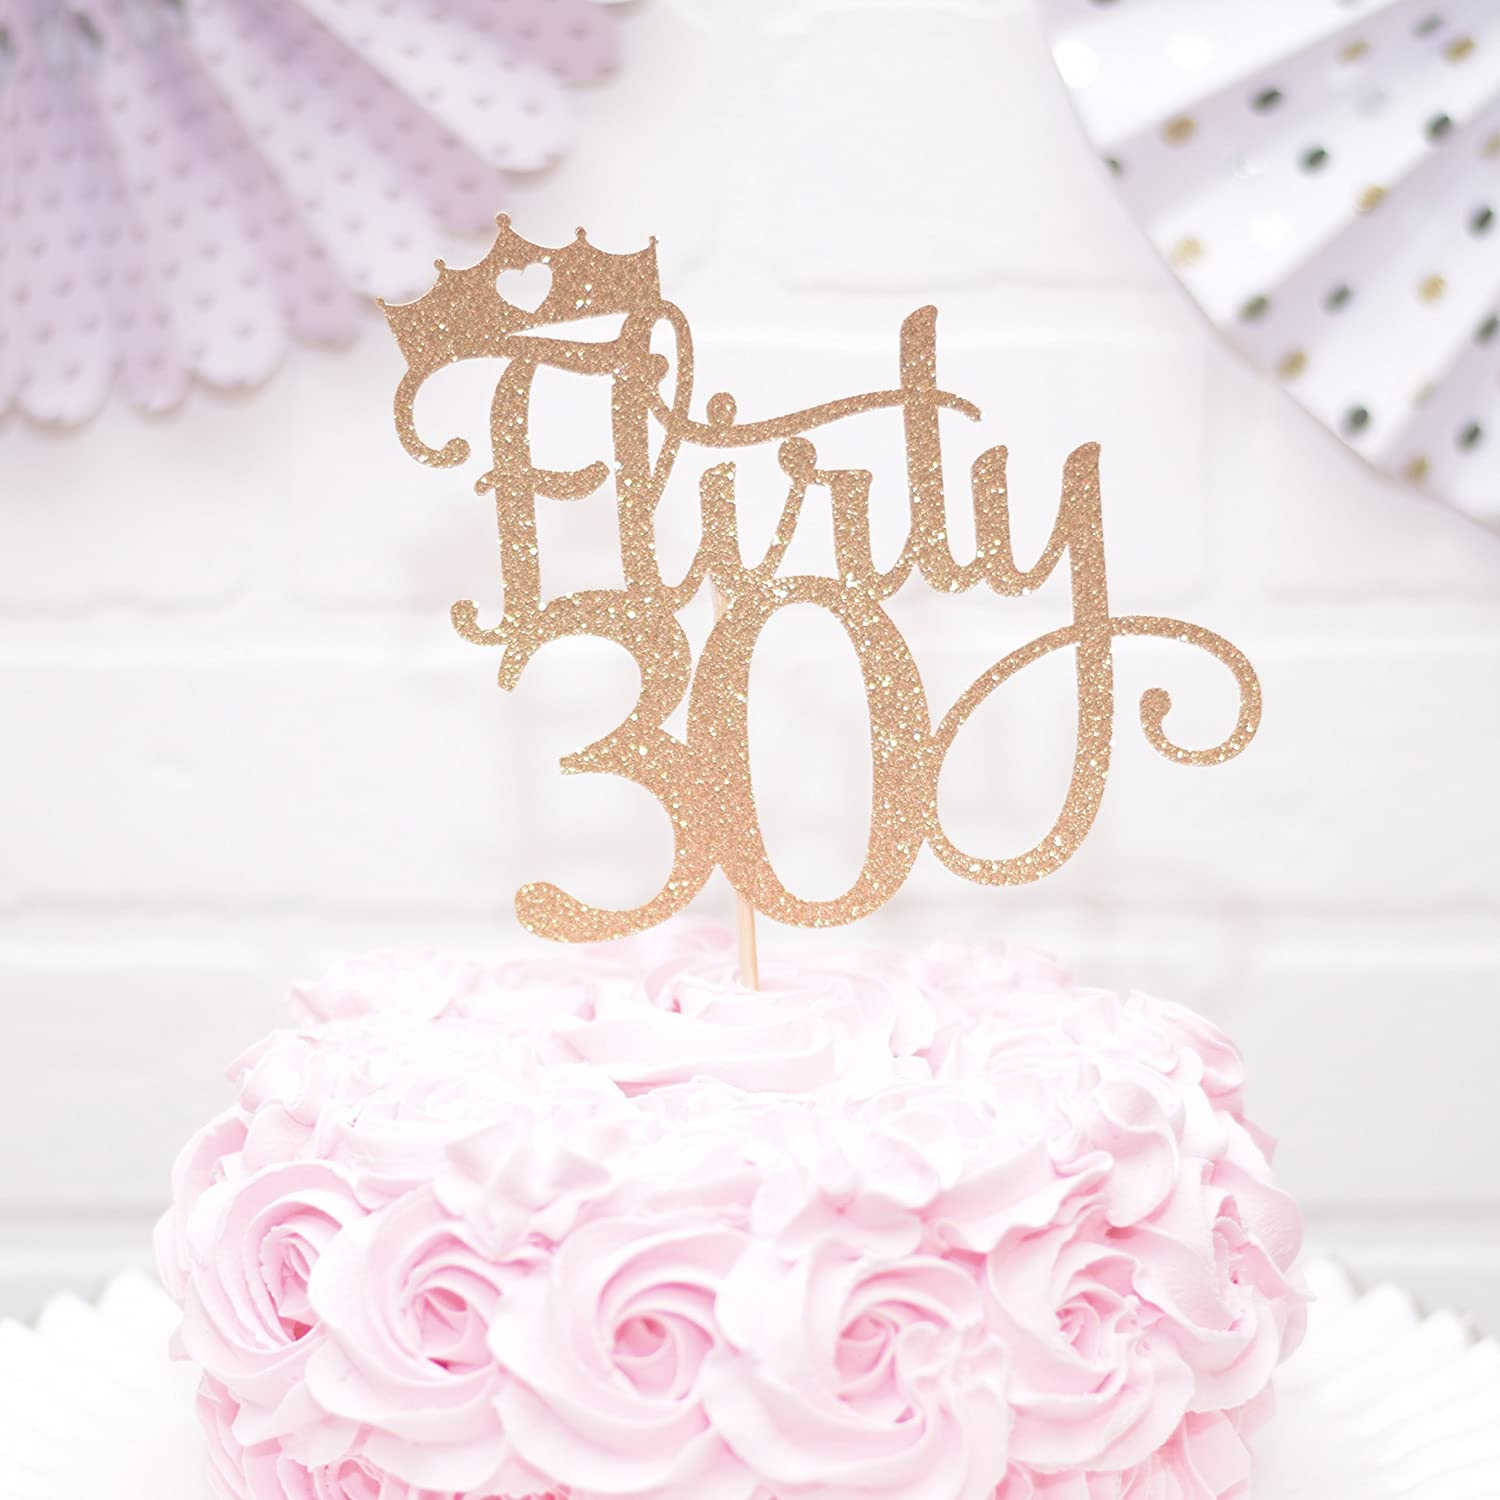 Fabulous Amazon Com Flirty 30 Cake Topper For 30Th Birthday Gold Handmade Funny Birthday Cards Online Inifodamsfinfo